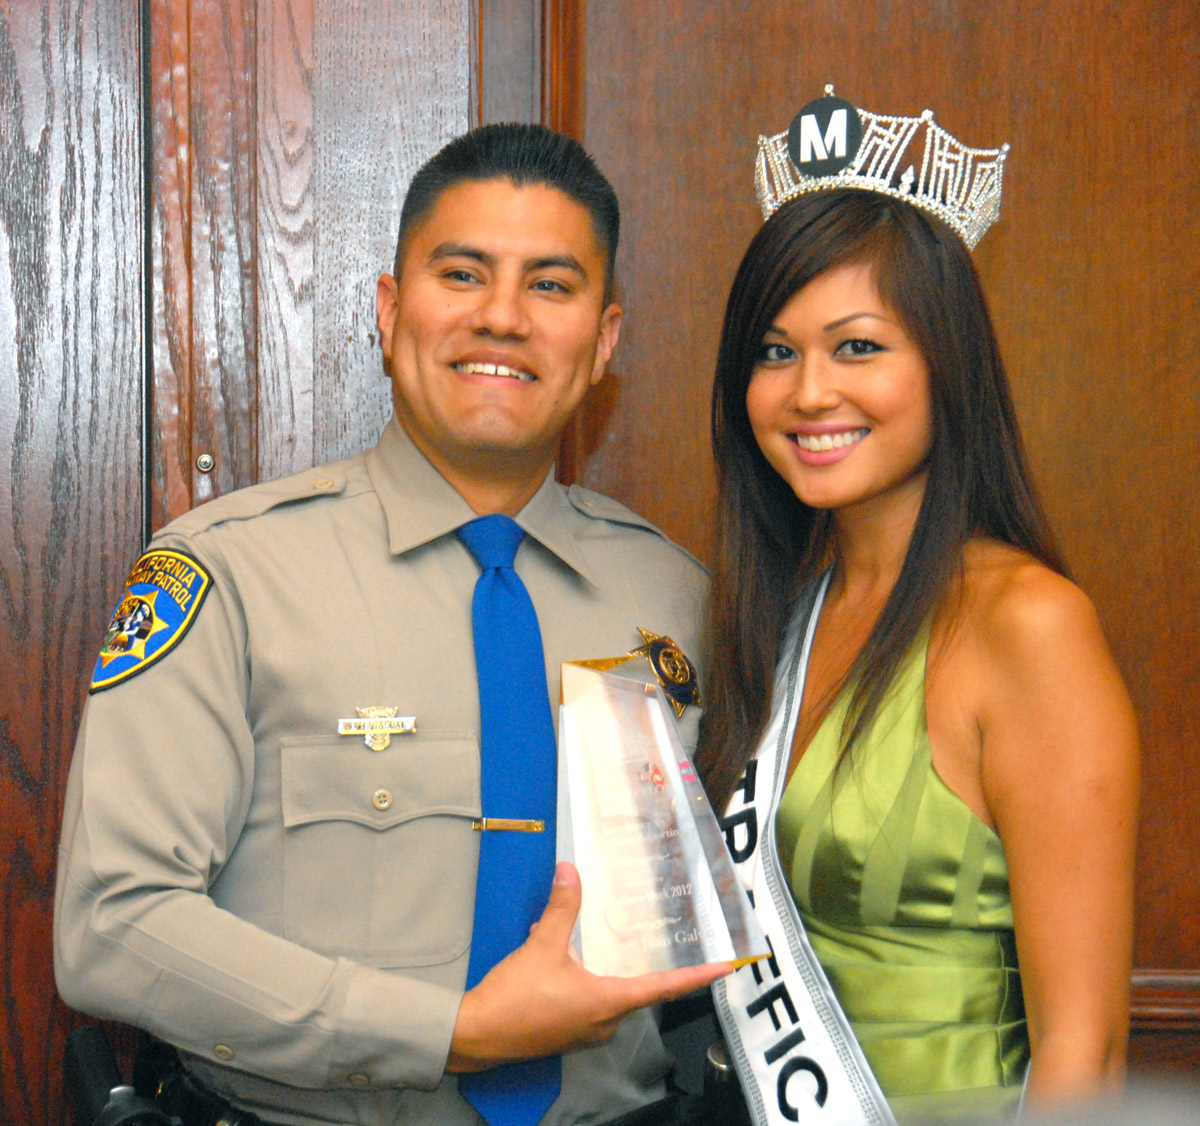 CHP reporter Officer Juan Galvin, Miss Traffic.